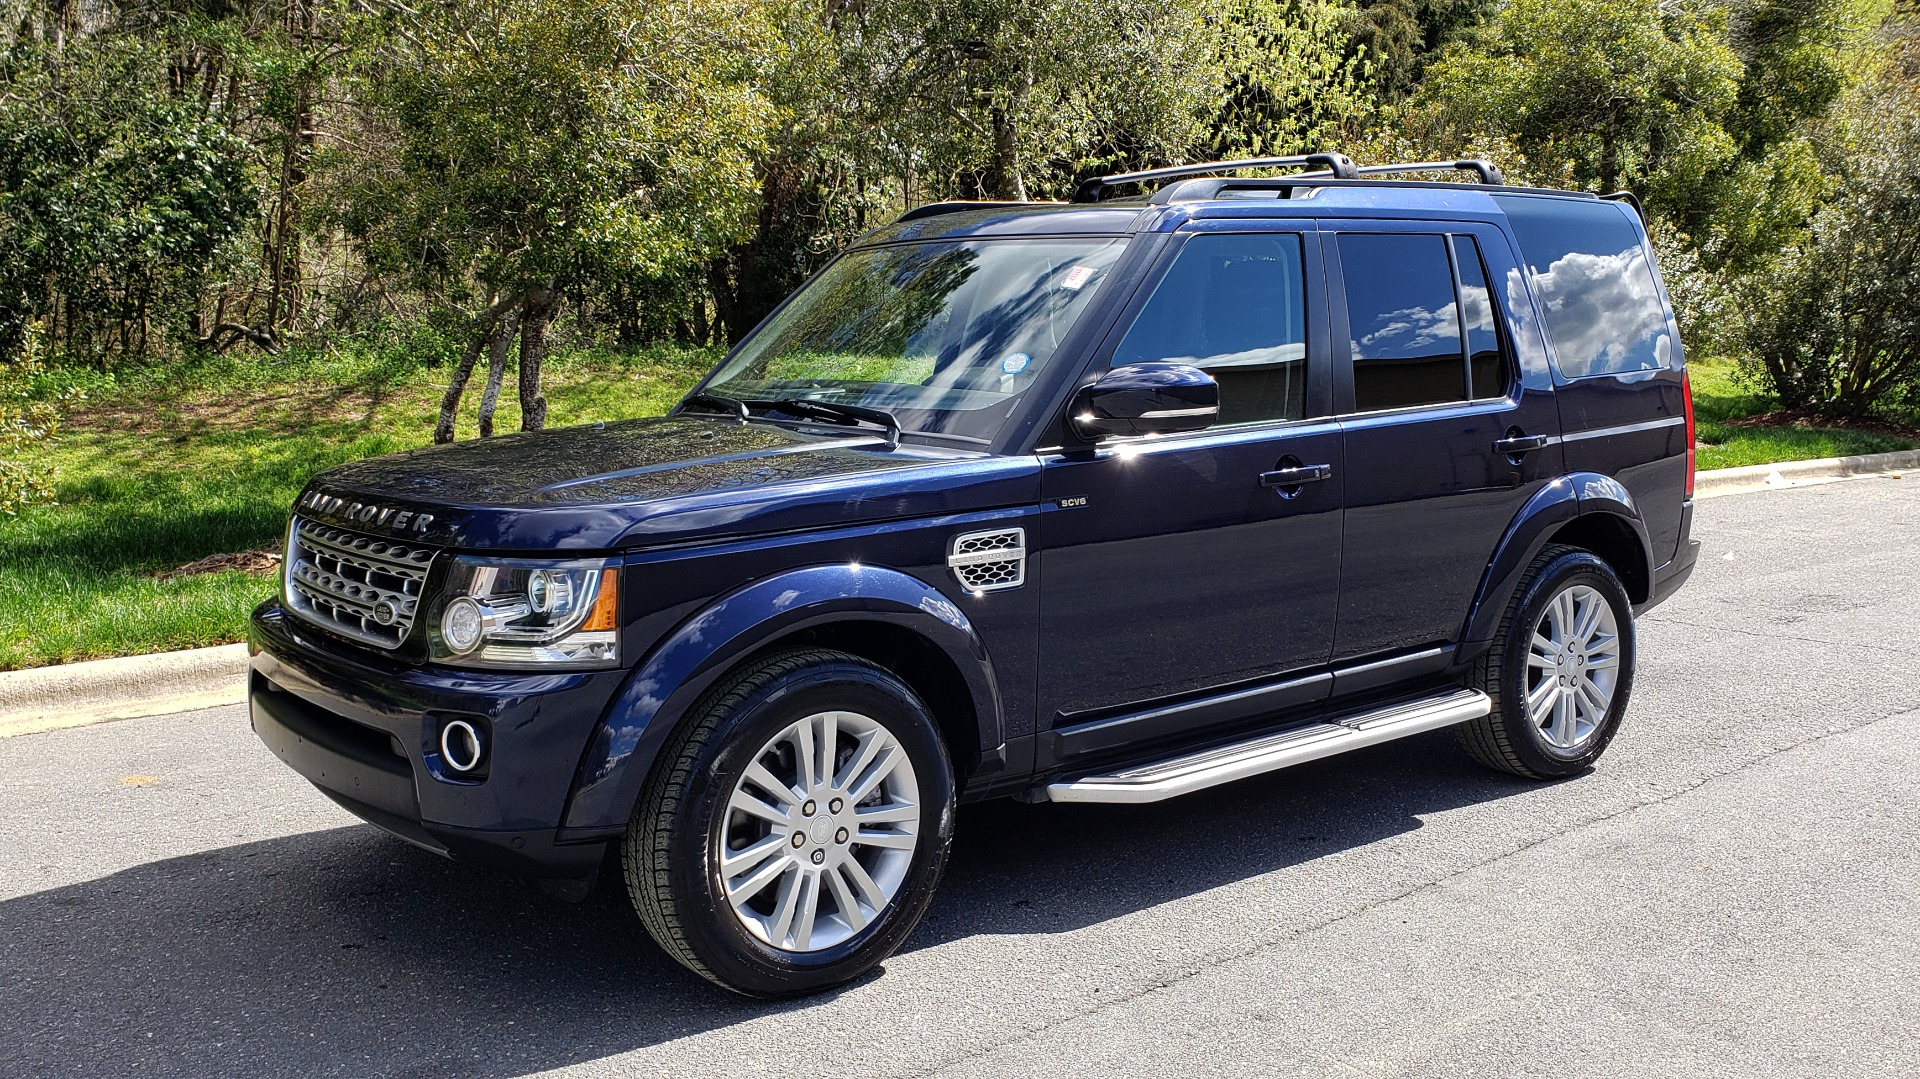 Used 2016 Land Rover LR4 HSE LUX / NAV / SUNROOF / MERIDIAN / REARVIEW / 3-ROW for sale Sold at Formula Imports in Charlotte NC 28227 1